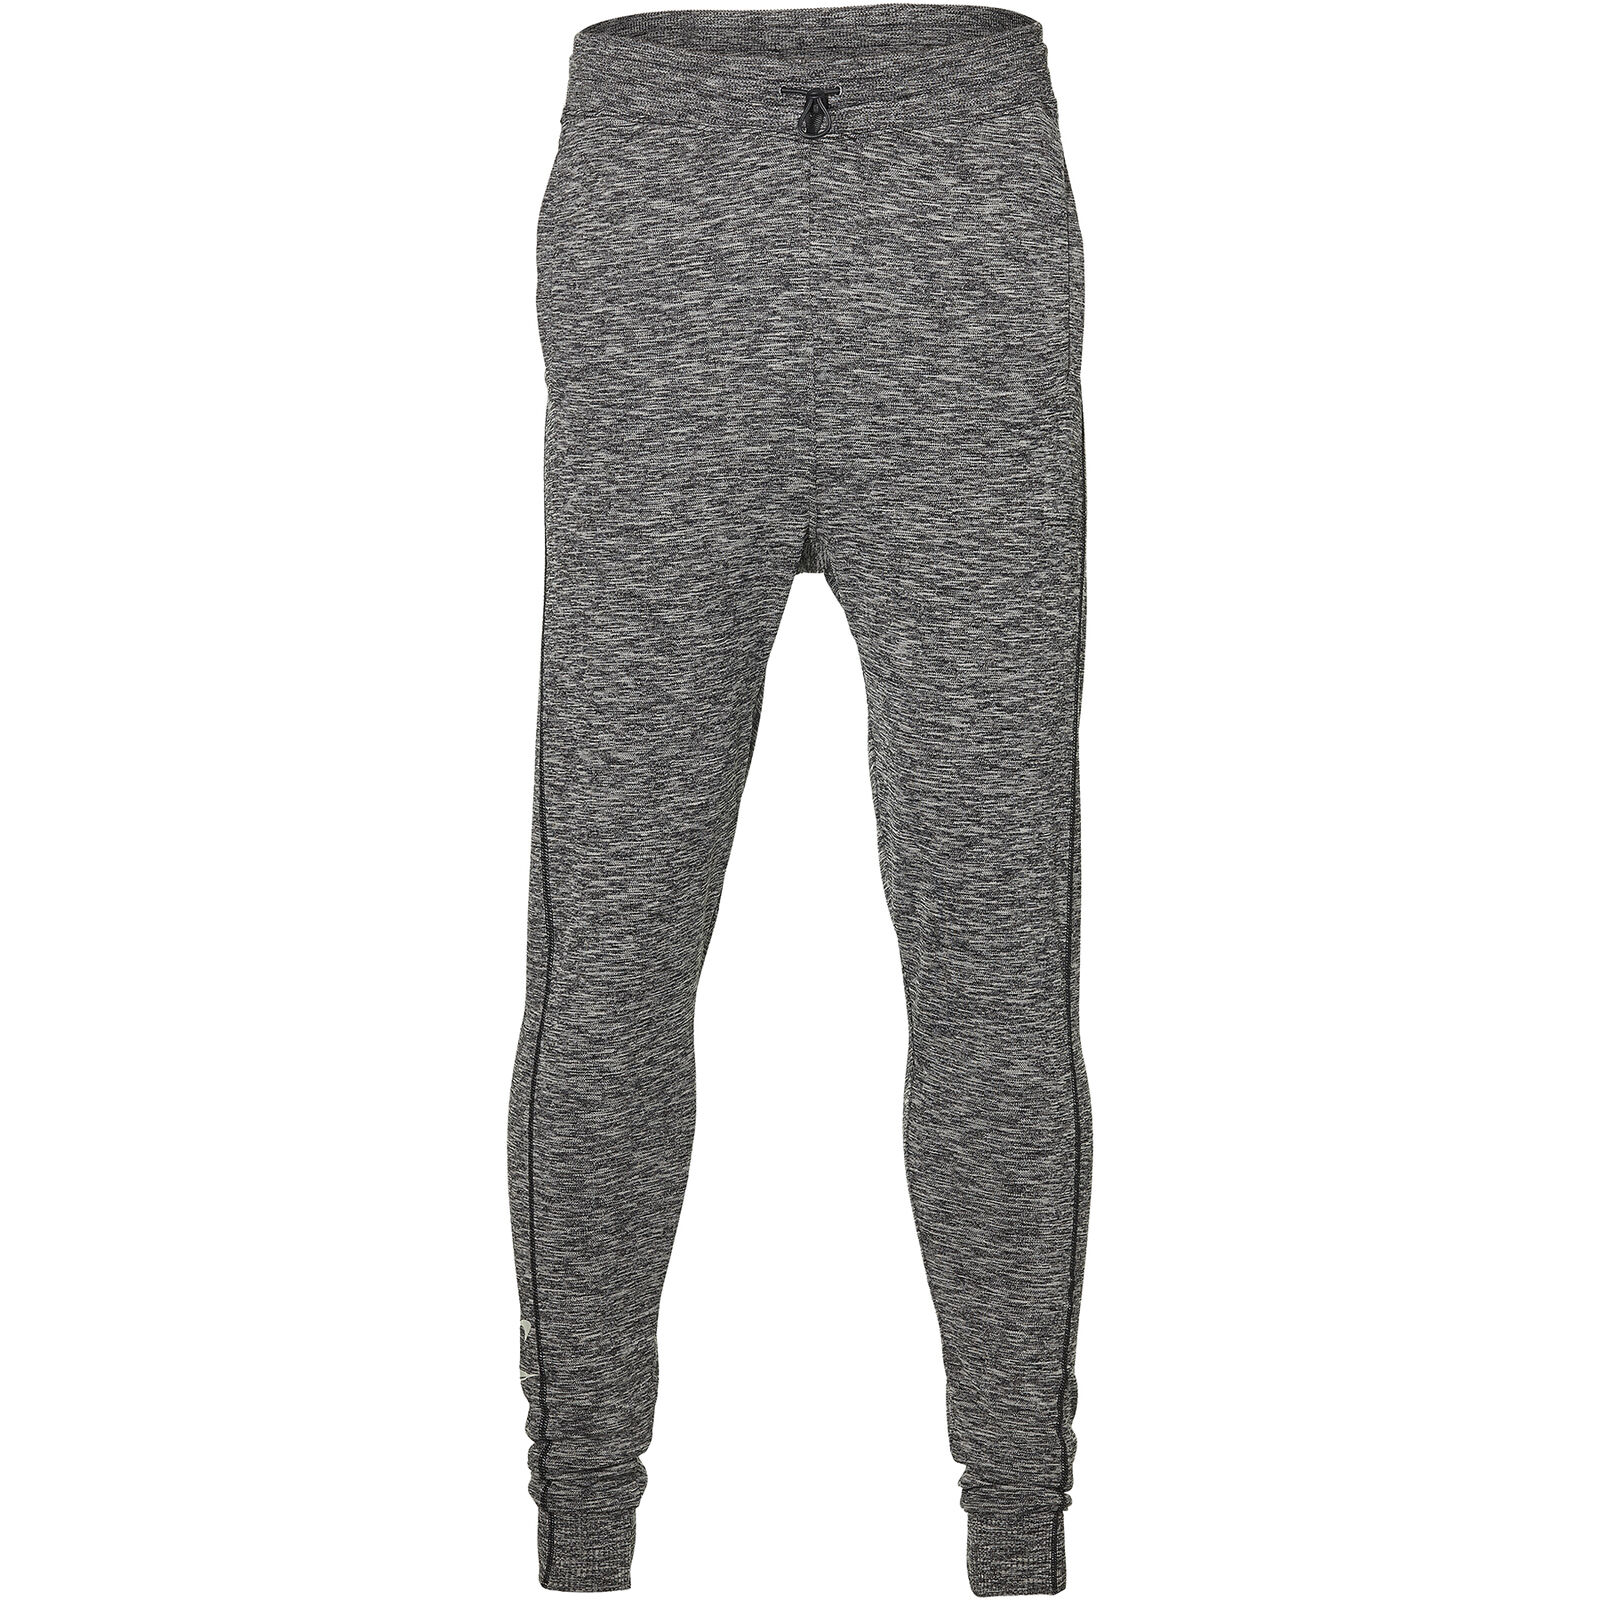 O'neill shorts racing kinetiq  knitted grey trousers thermoregulierend  new products novelty items